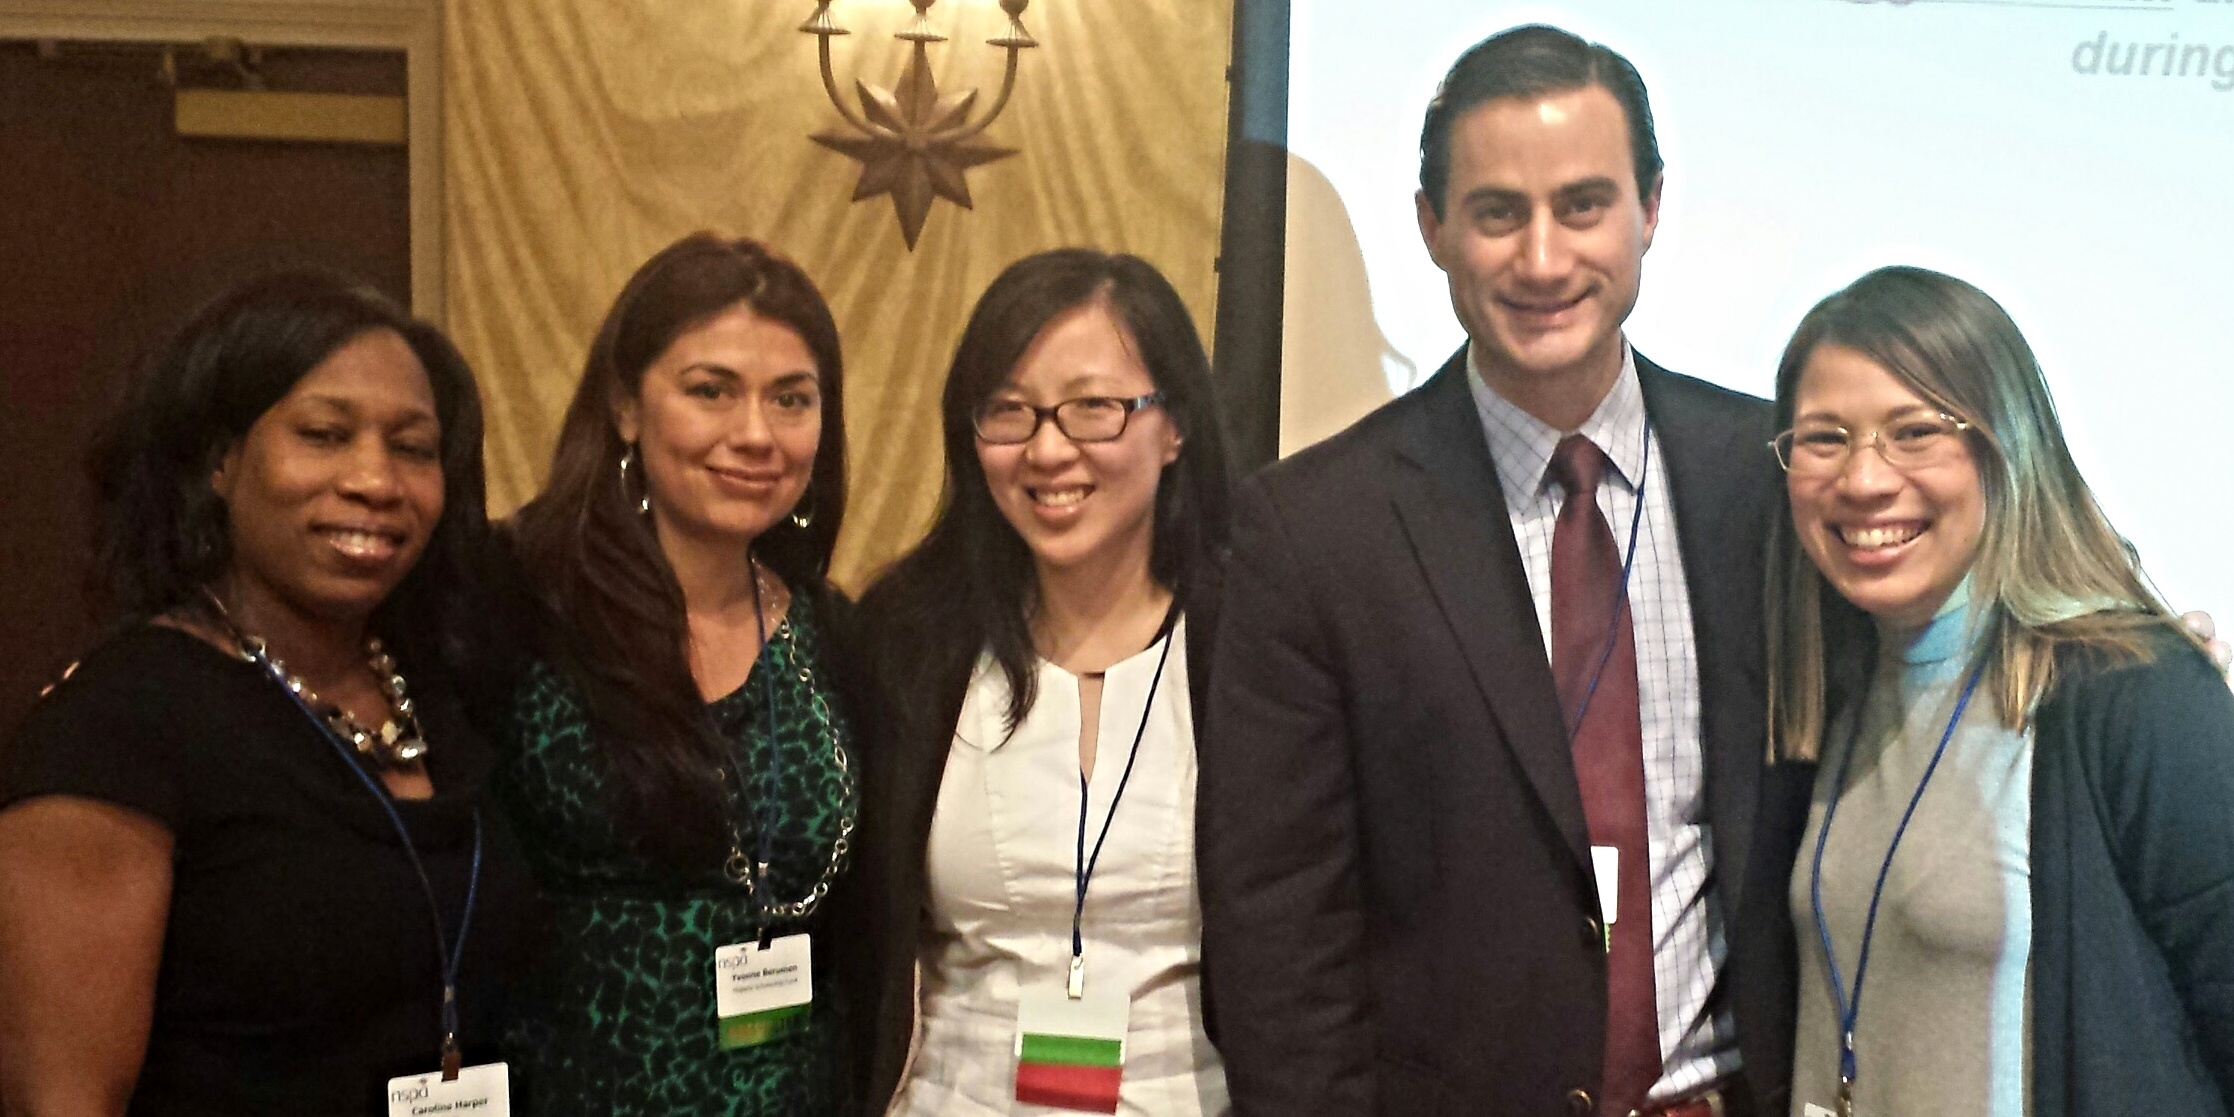 Nara Lee with noted NSPA presenters